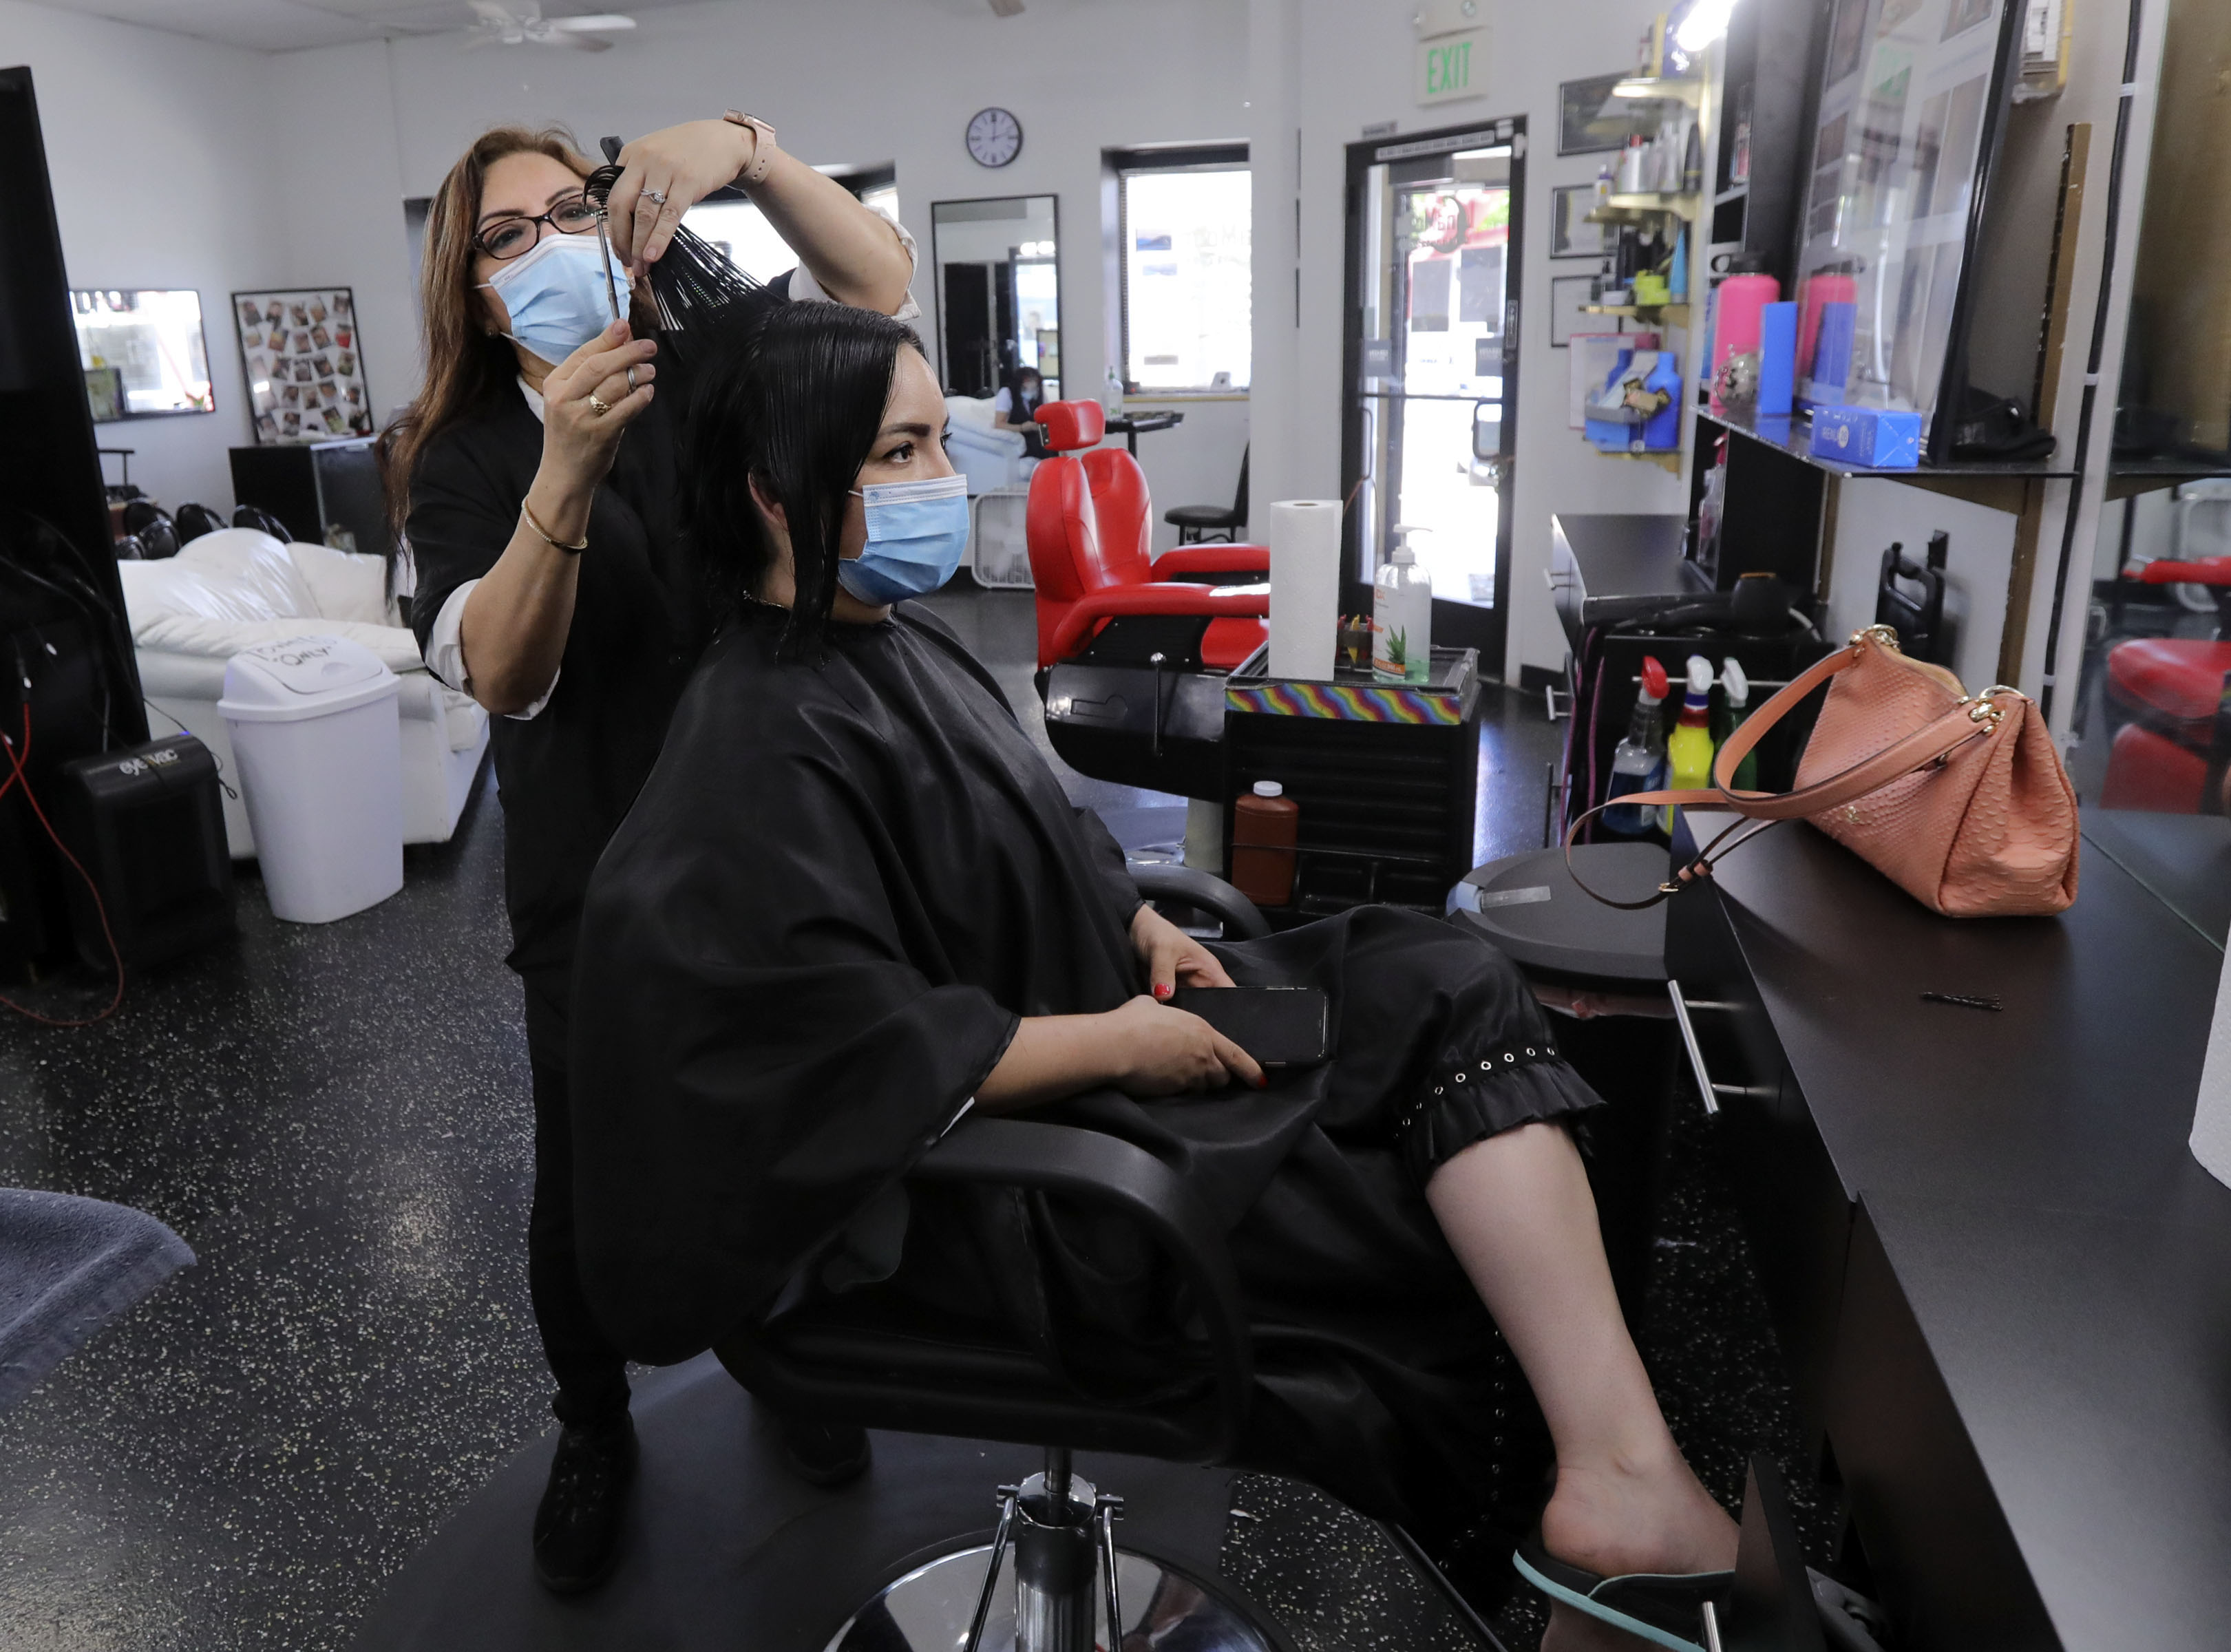 Violet Campos, owner of LunaMoon Salon and Barbershop, gives Lily Pinon a haircut at her shop in Taylorsville on Thursday, June 11, 2020. Campos applied for COVID-19 relief grants but said she was denied because her business was too small.